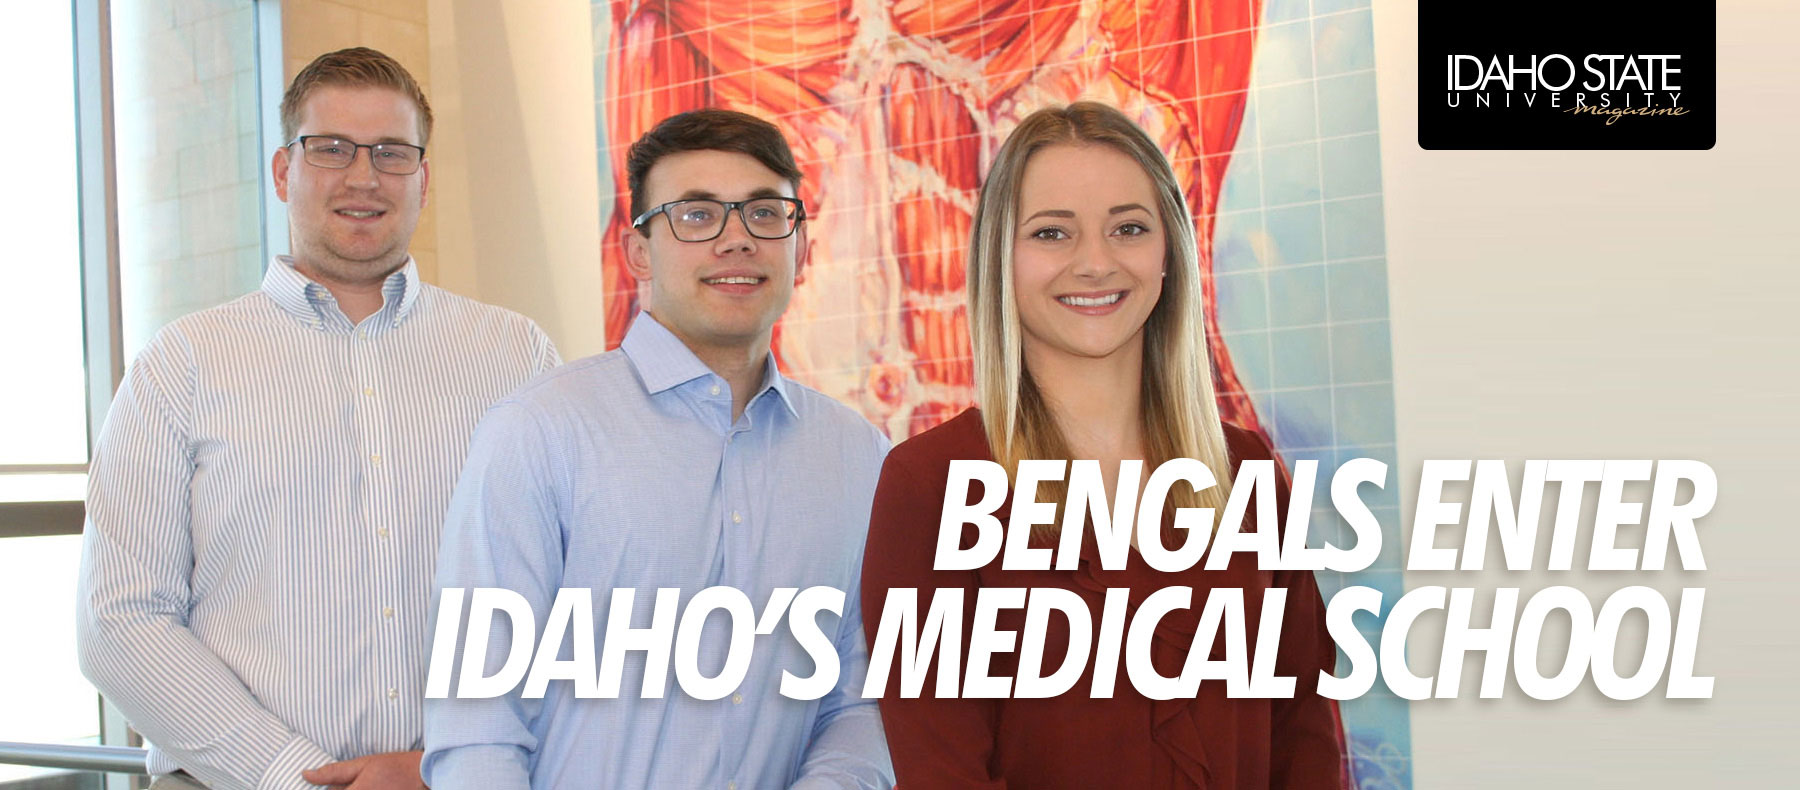 Bengals enter Idaho's medical school